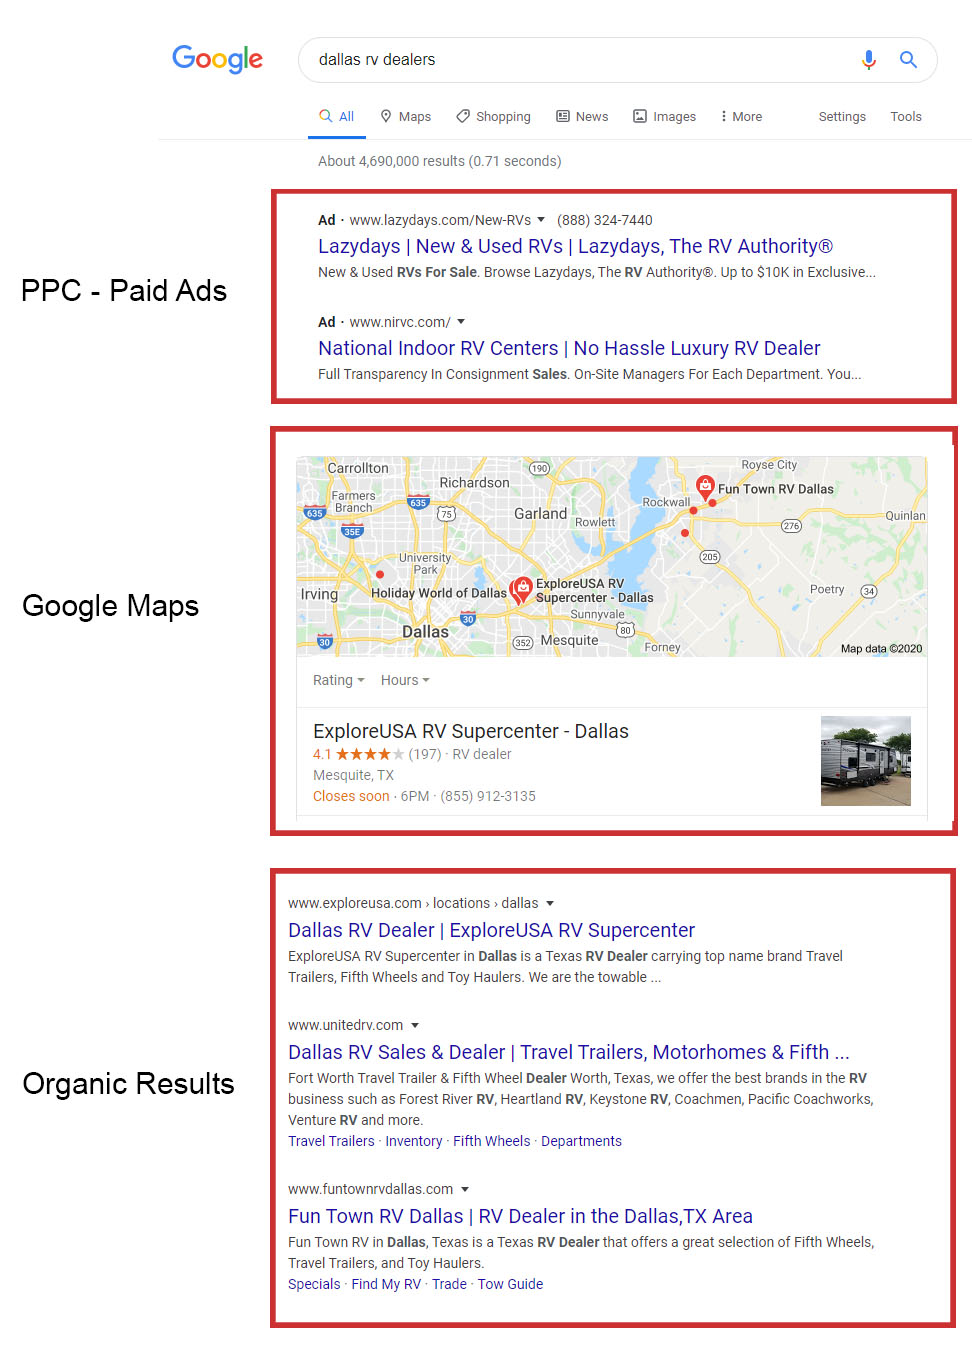 SEO vs ppc search result layout